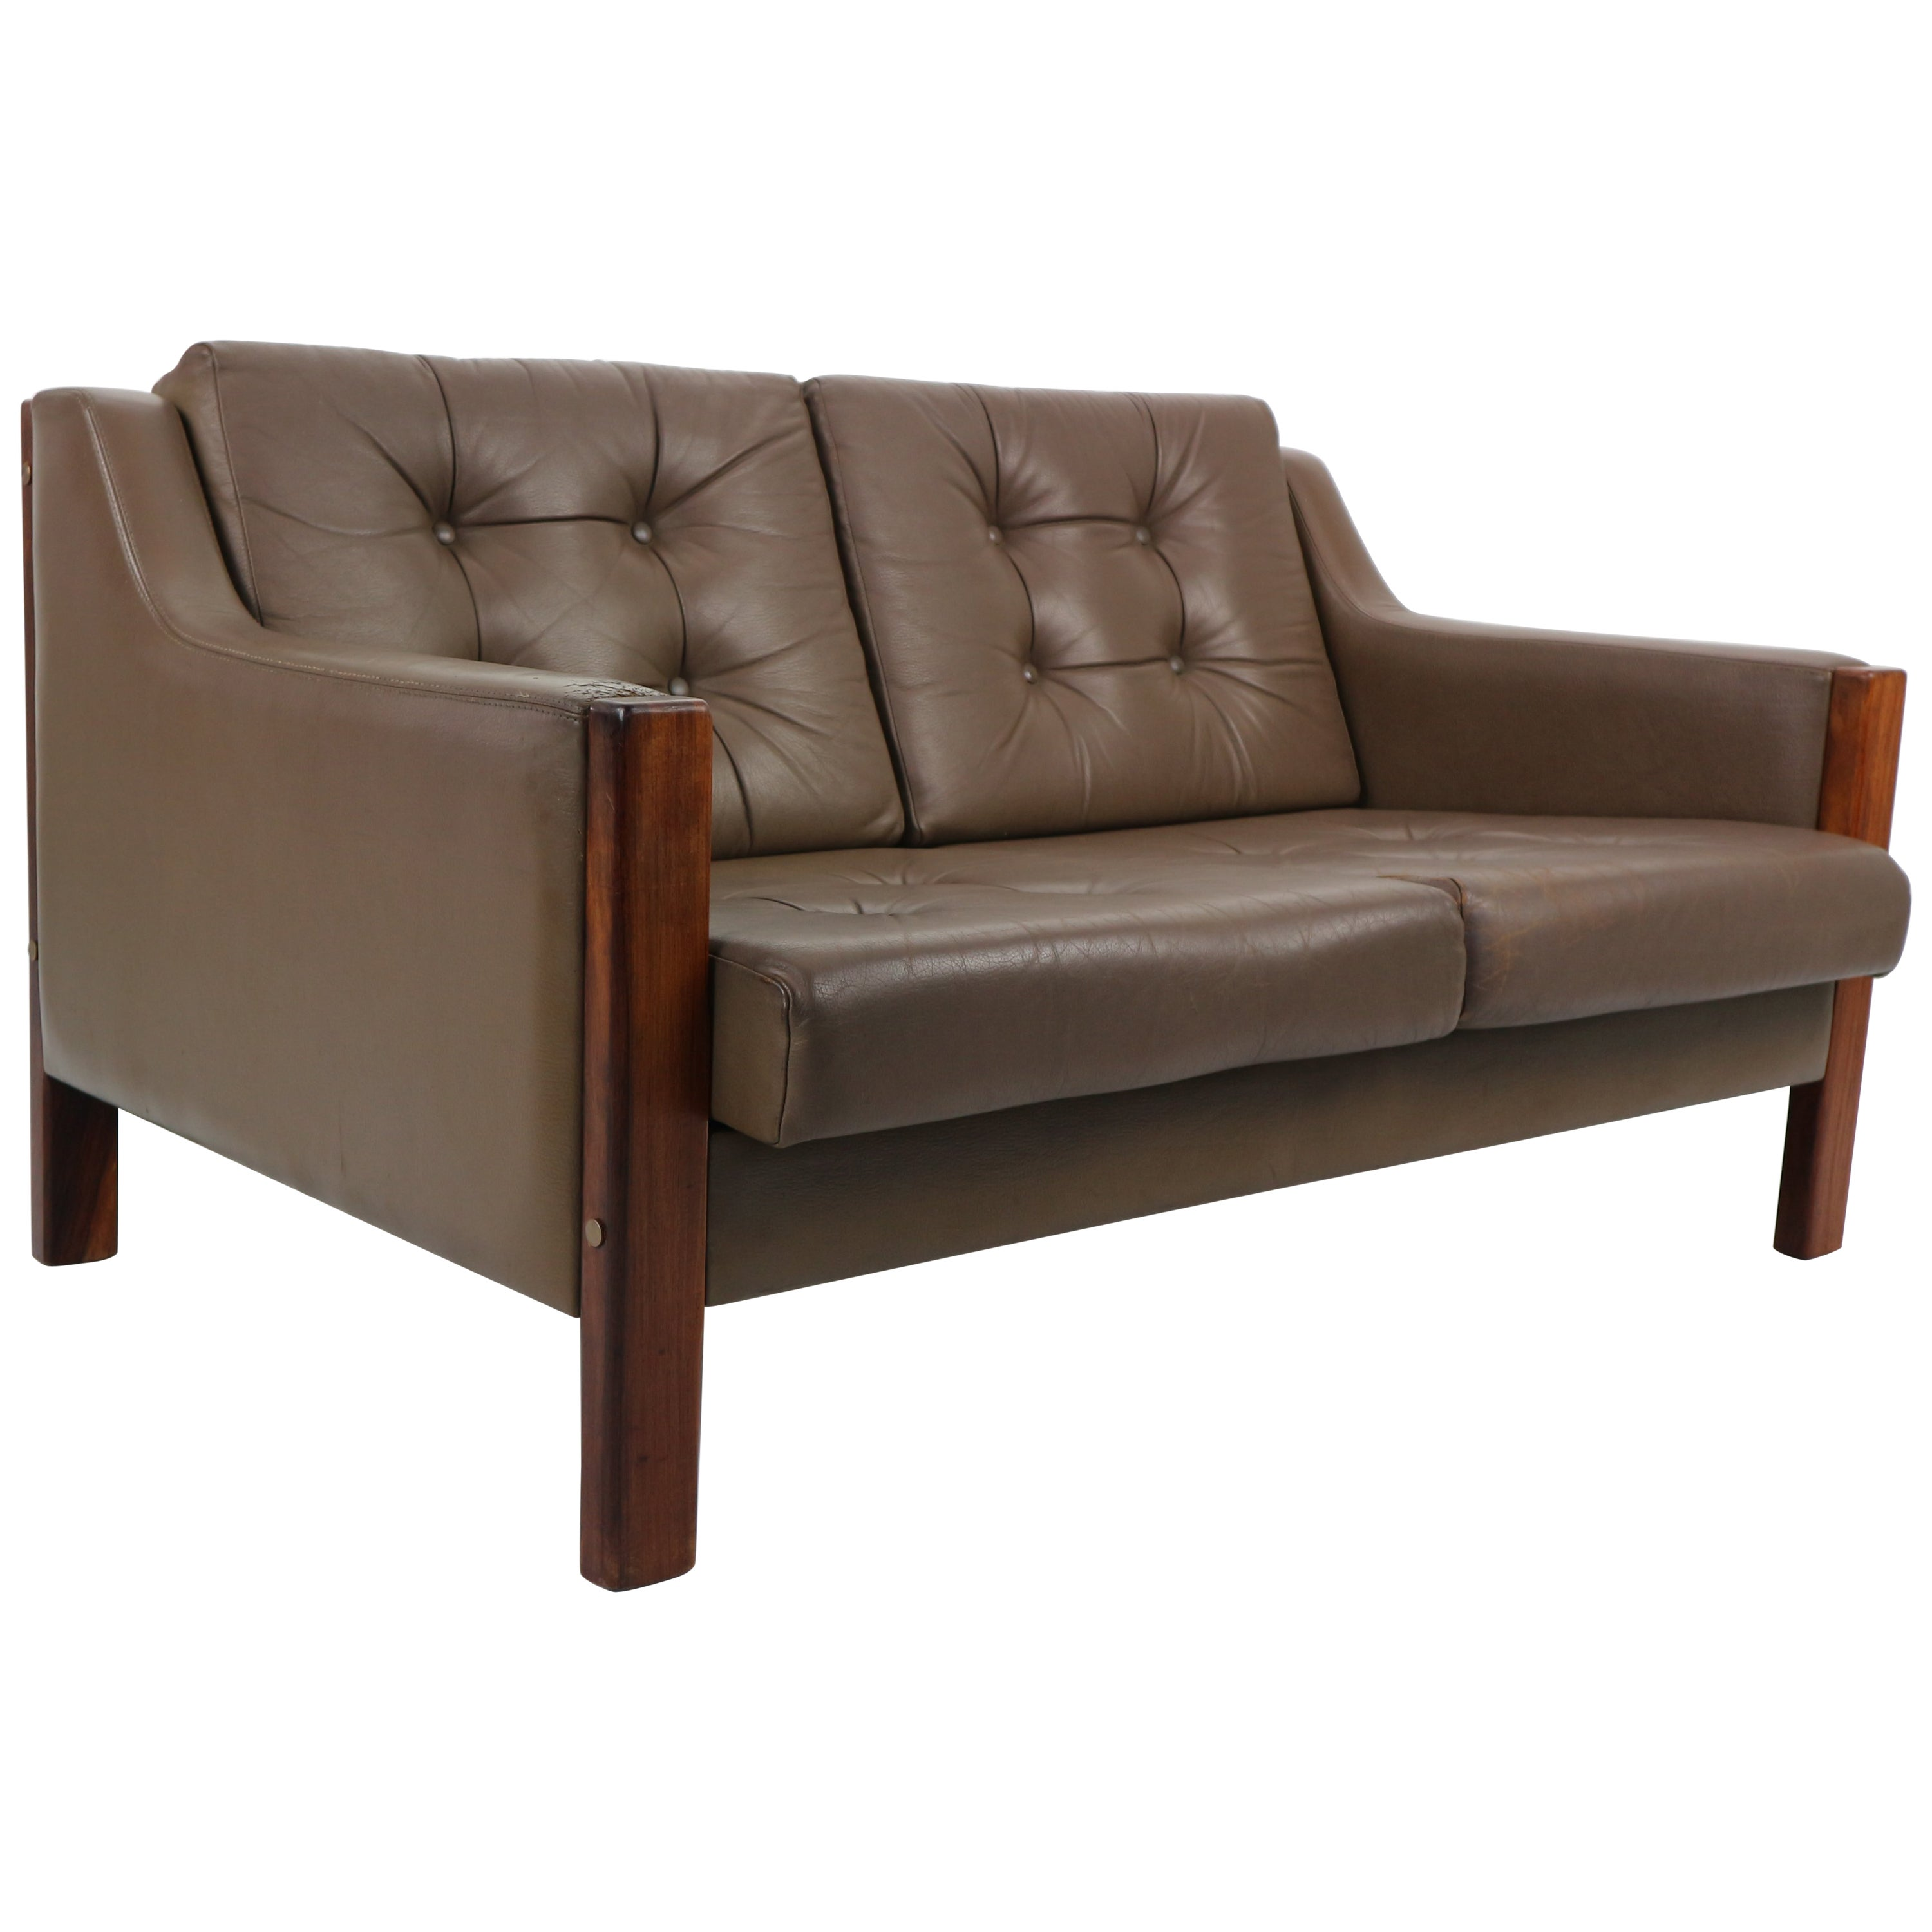 Scandinavian Midcentury Two-Seat Leather Sofa and Rosewood, 1970s